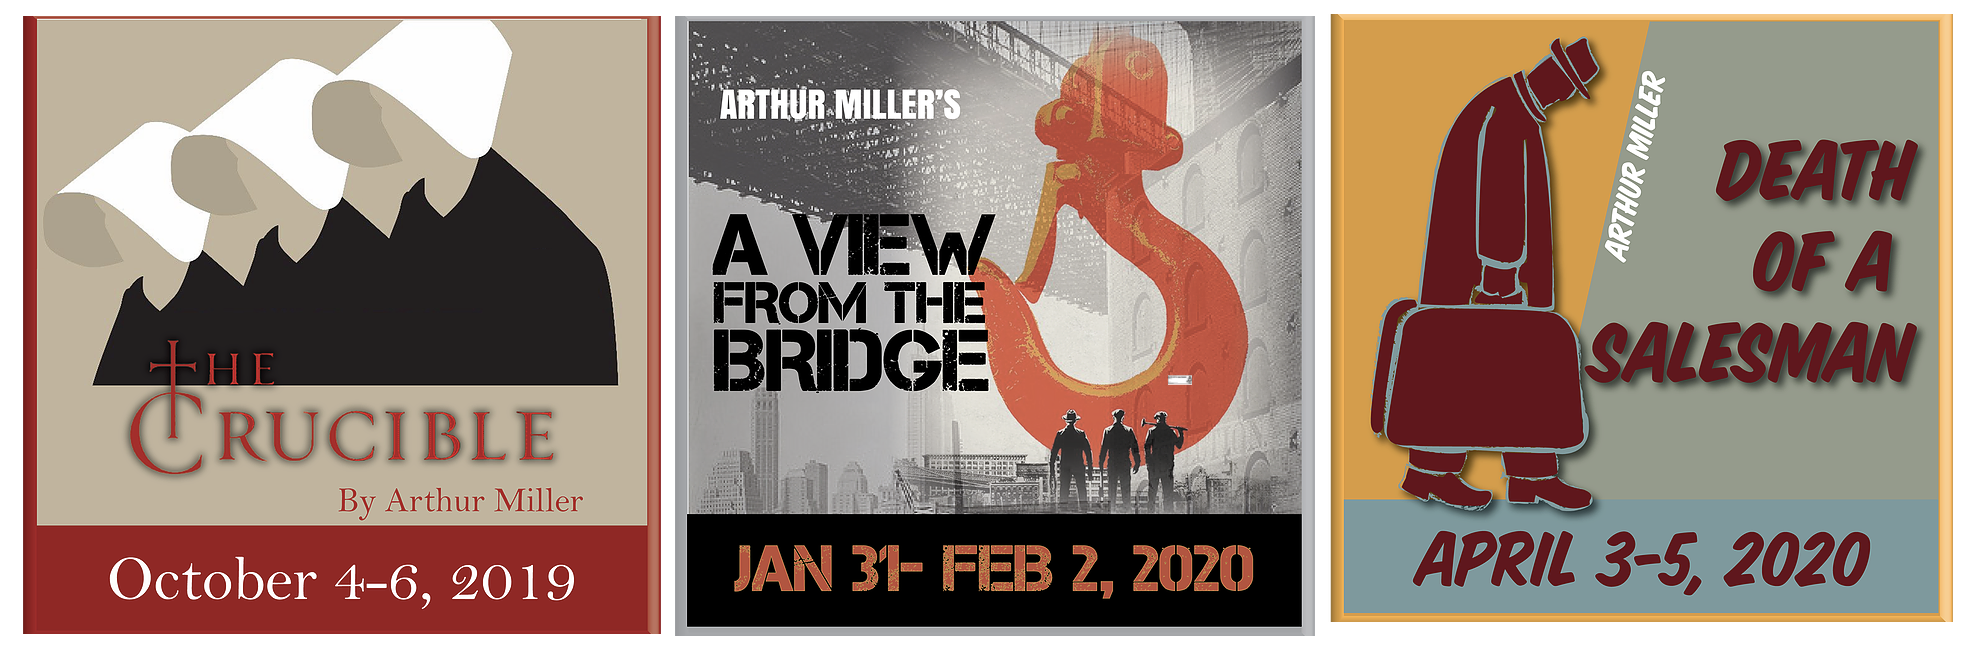 Special Events and News – The Arthur Miller Society